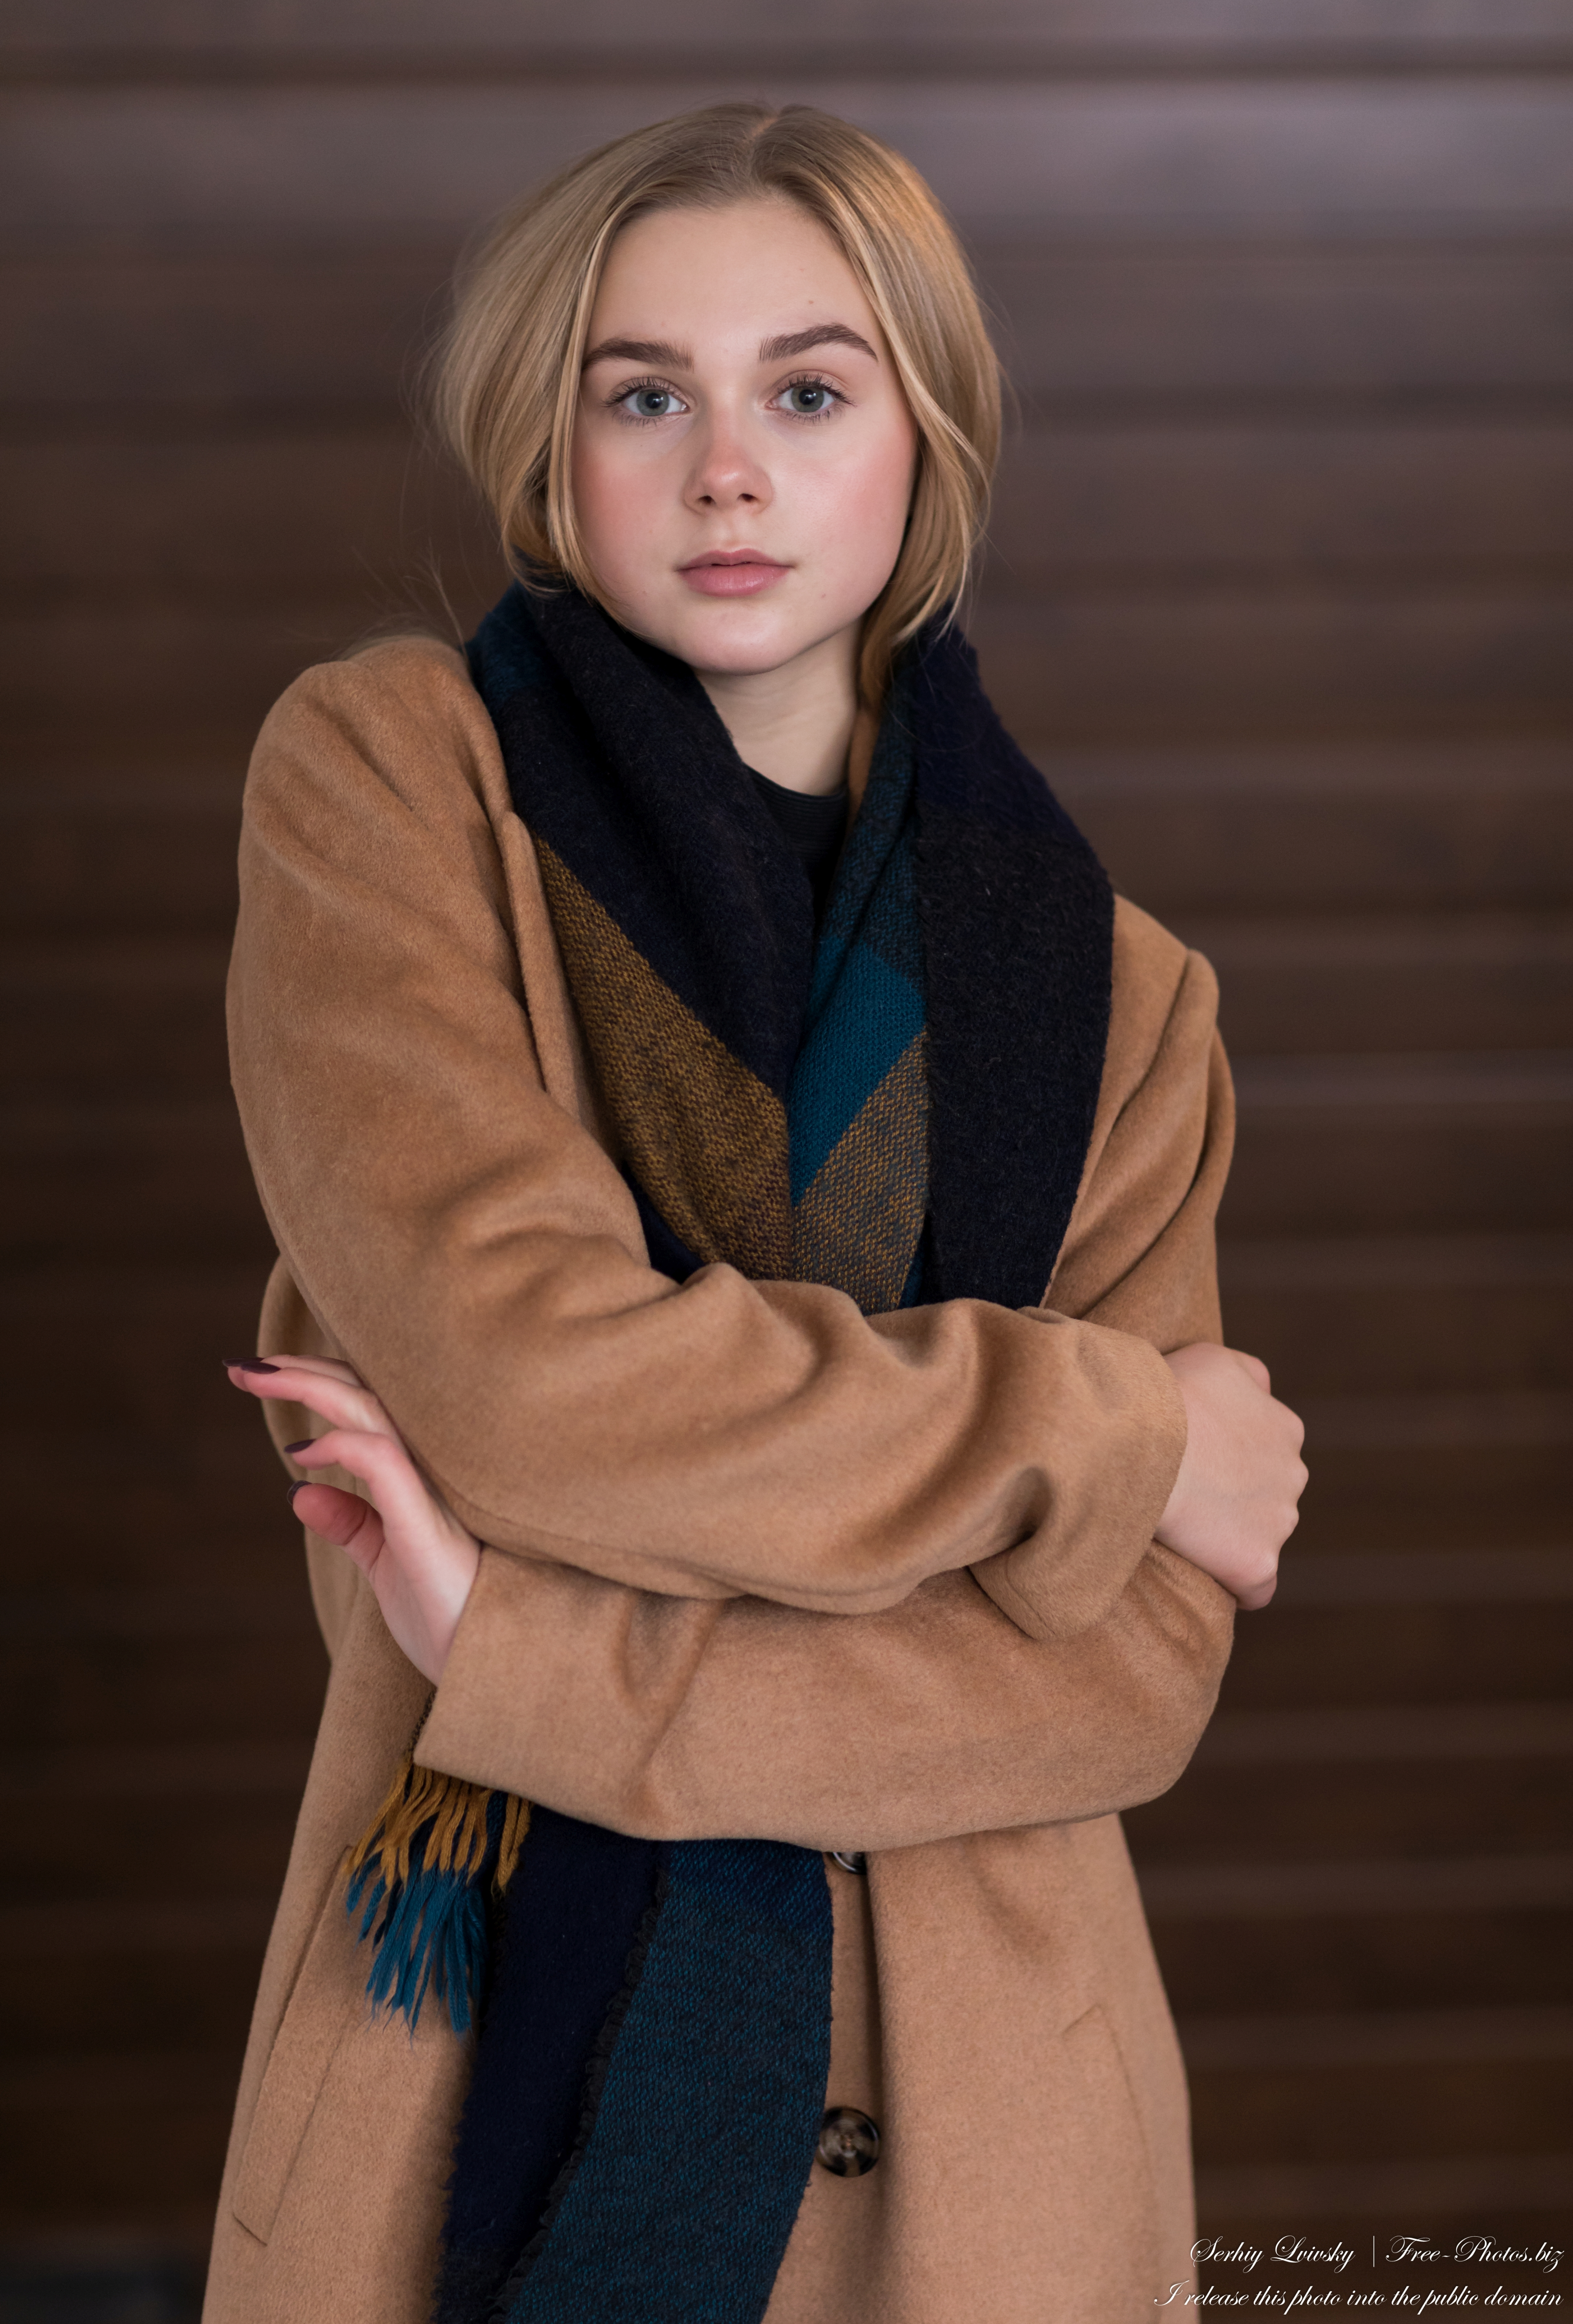 emilia_a_15-year-old_natural_blonde_catholic_girl_in_nov_2020_by_serhiy_lvivsky_18